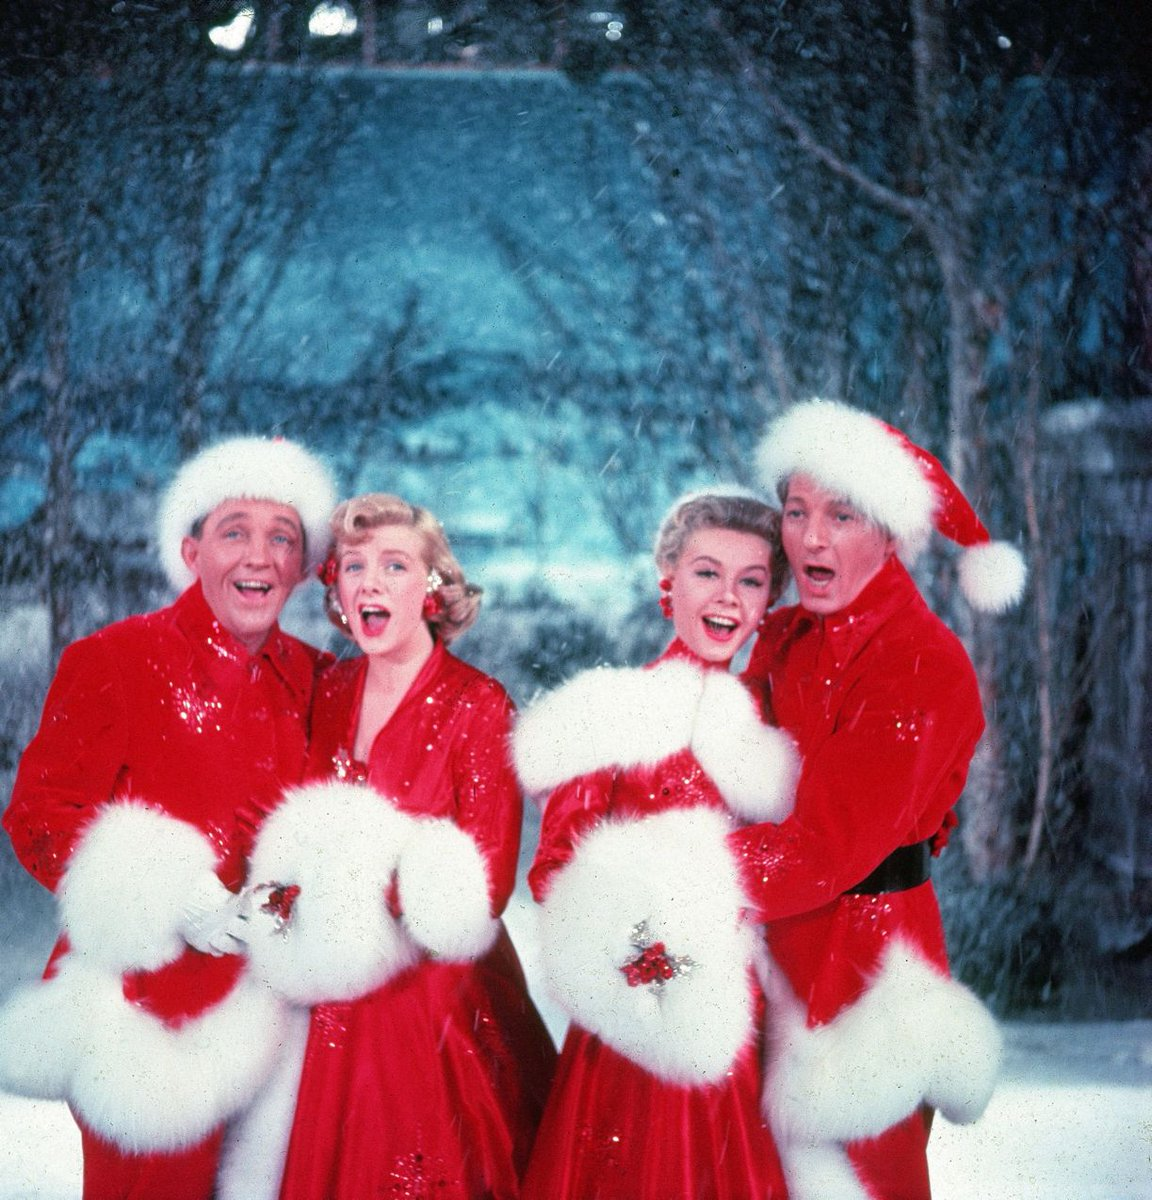 Might Not Believe This Butthe Fake Snow In The Wizard Of Oz 1939 And White Christmas 1954 Was Made Asbestos Tco ElptEWtBEb